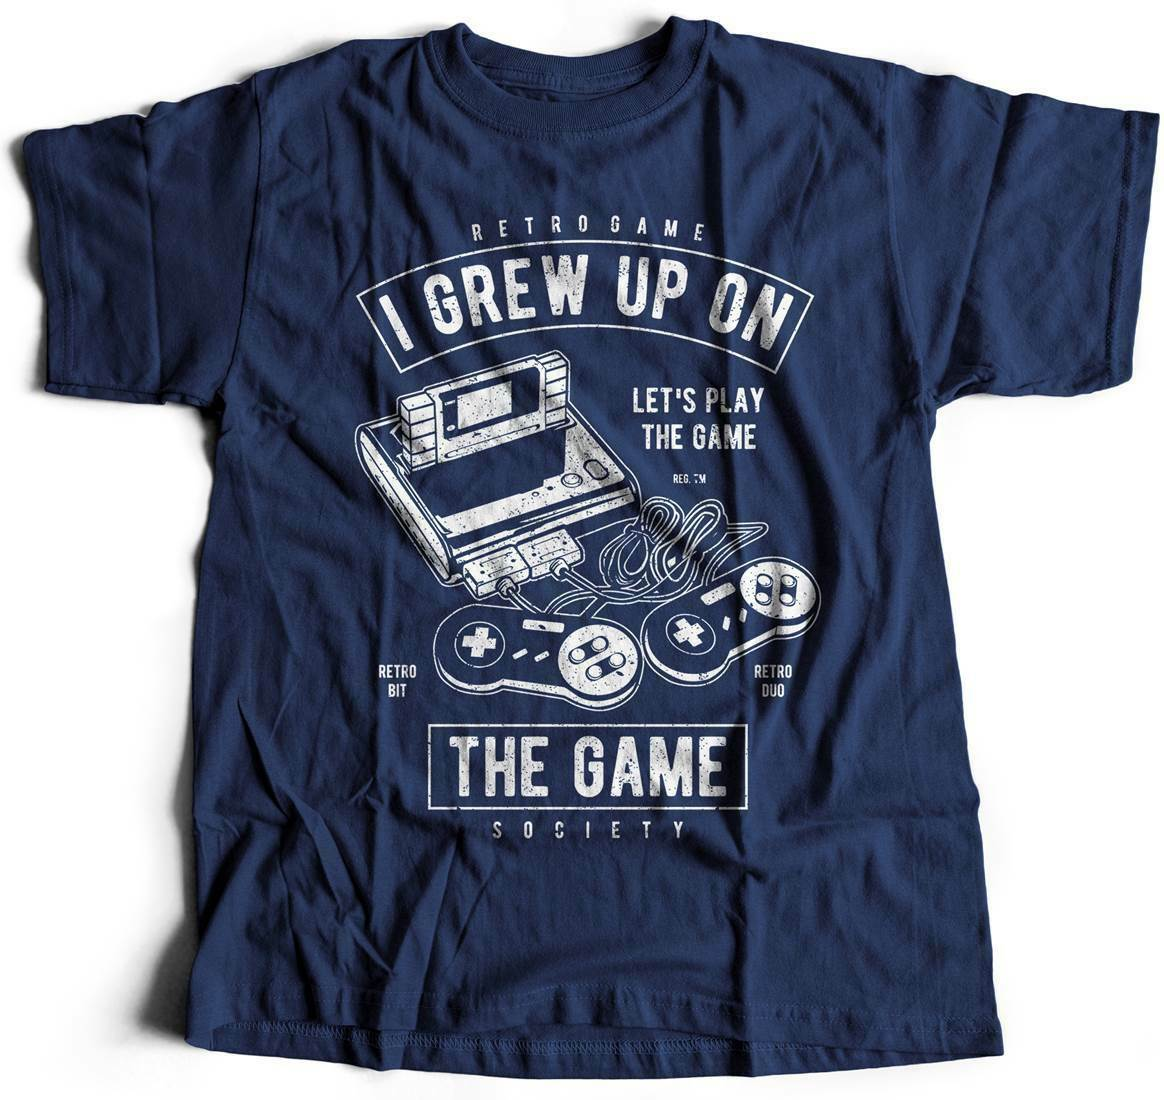 Grew Up On The Game Geek T-Shirt Gamer Retro Club Legend Arcade Play Video A679 image